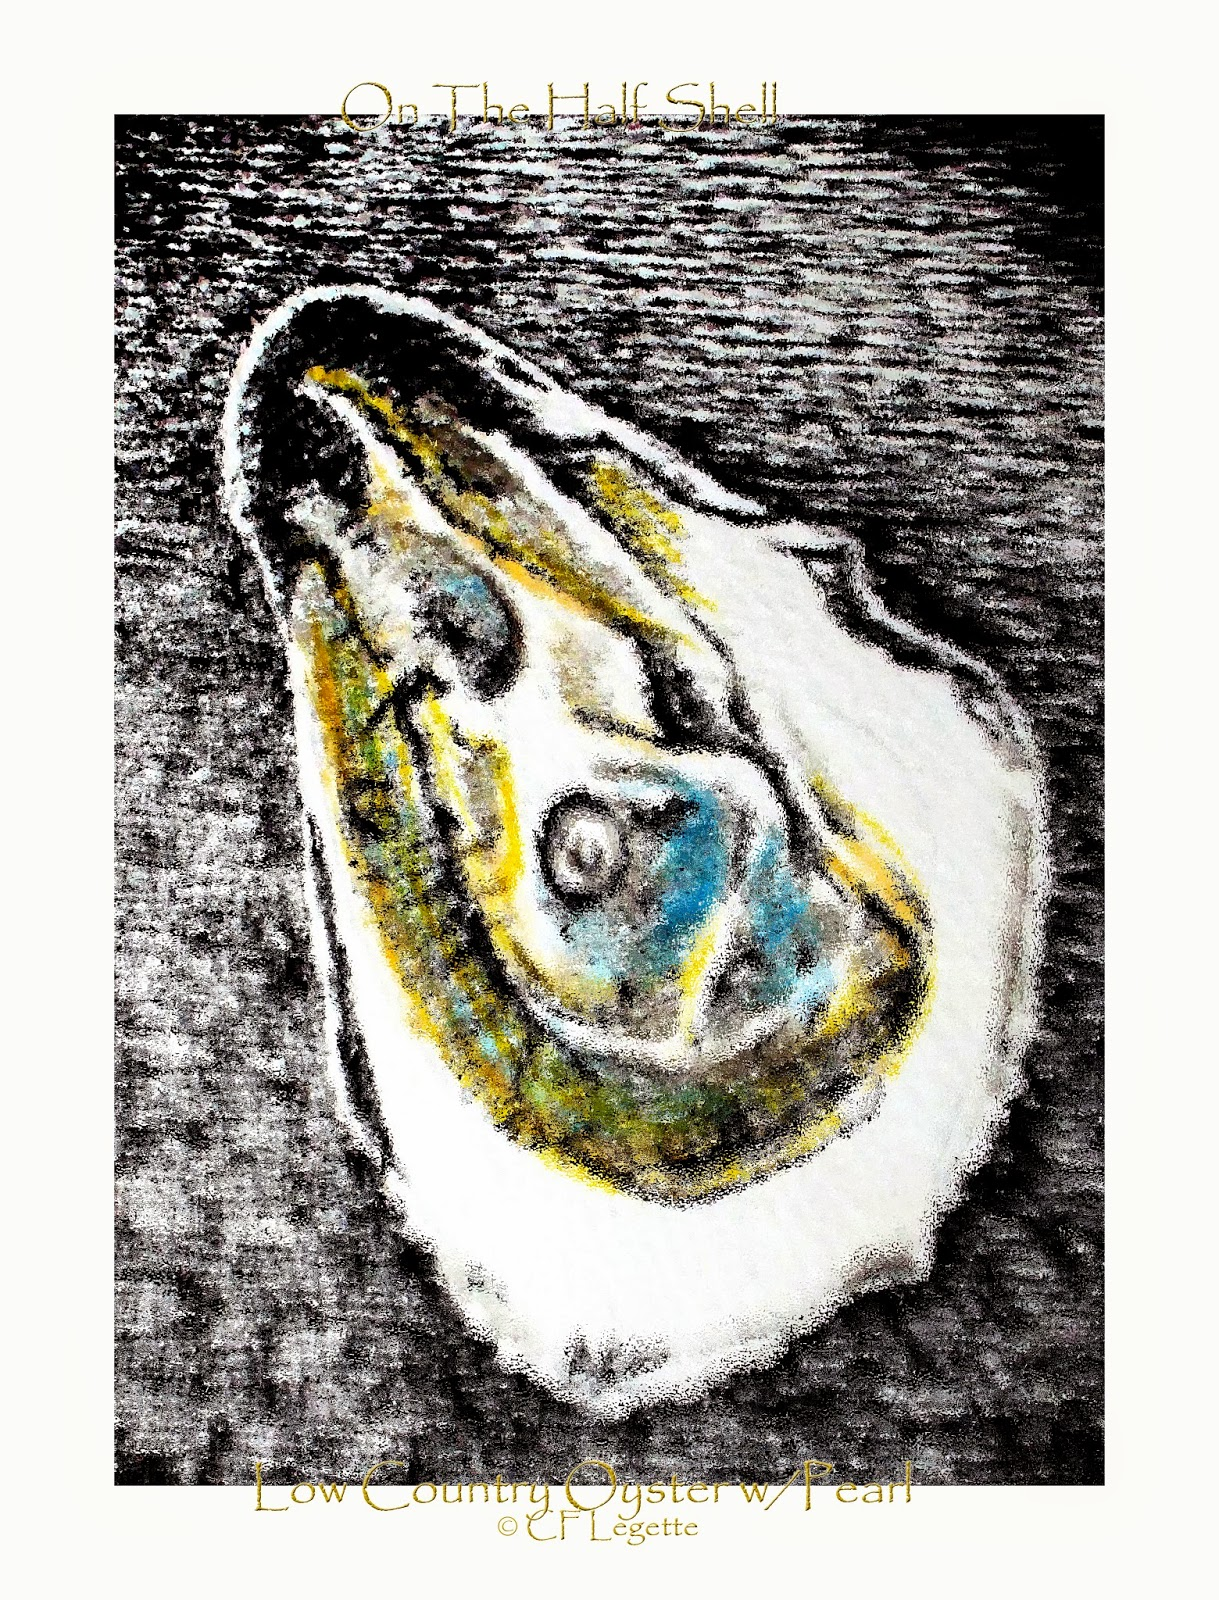 http://fineartamerica.com/featured/low-country-oyster-w-pearl-c-f-legette.html?newartwork=true